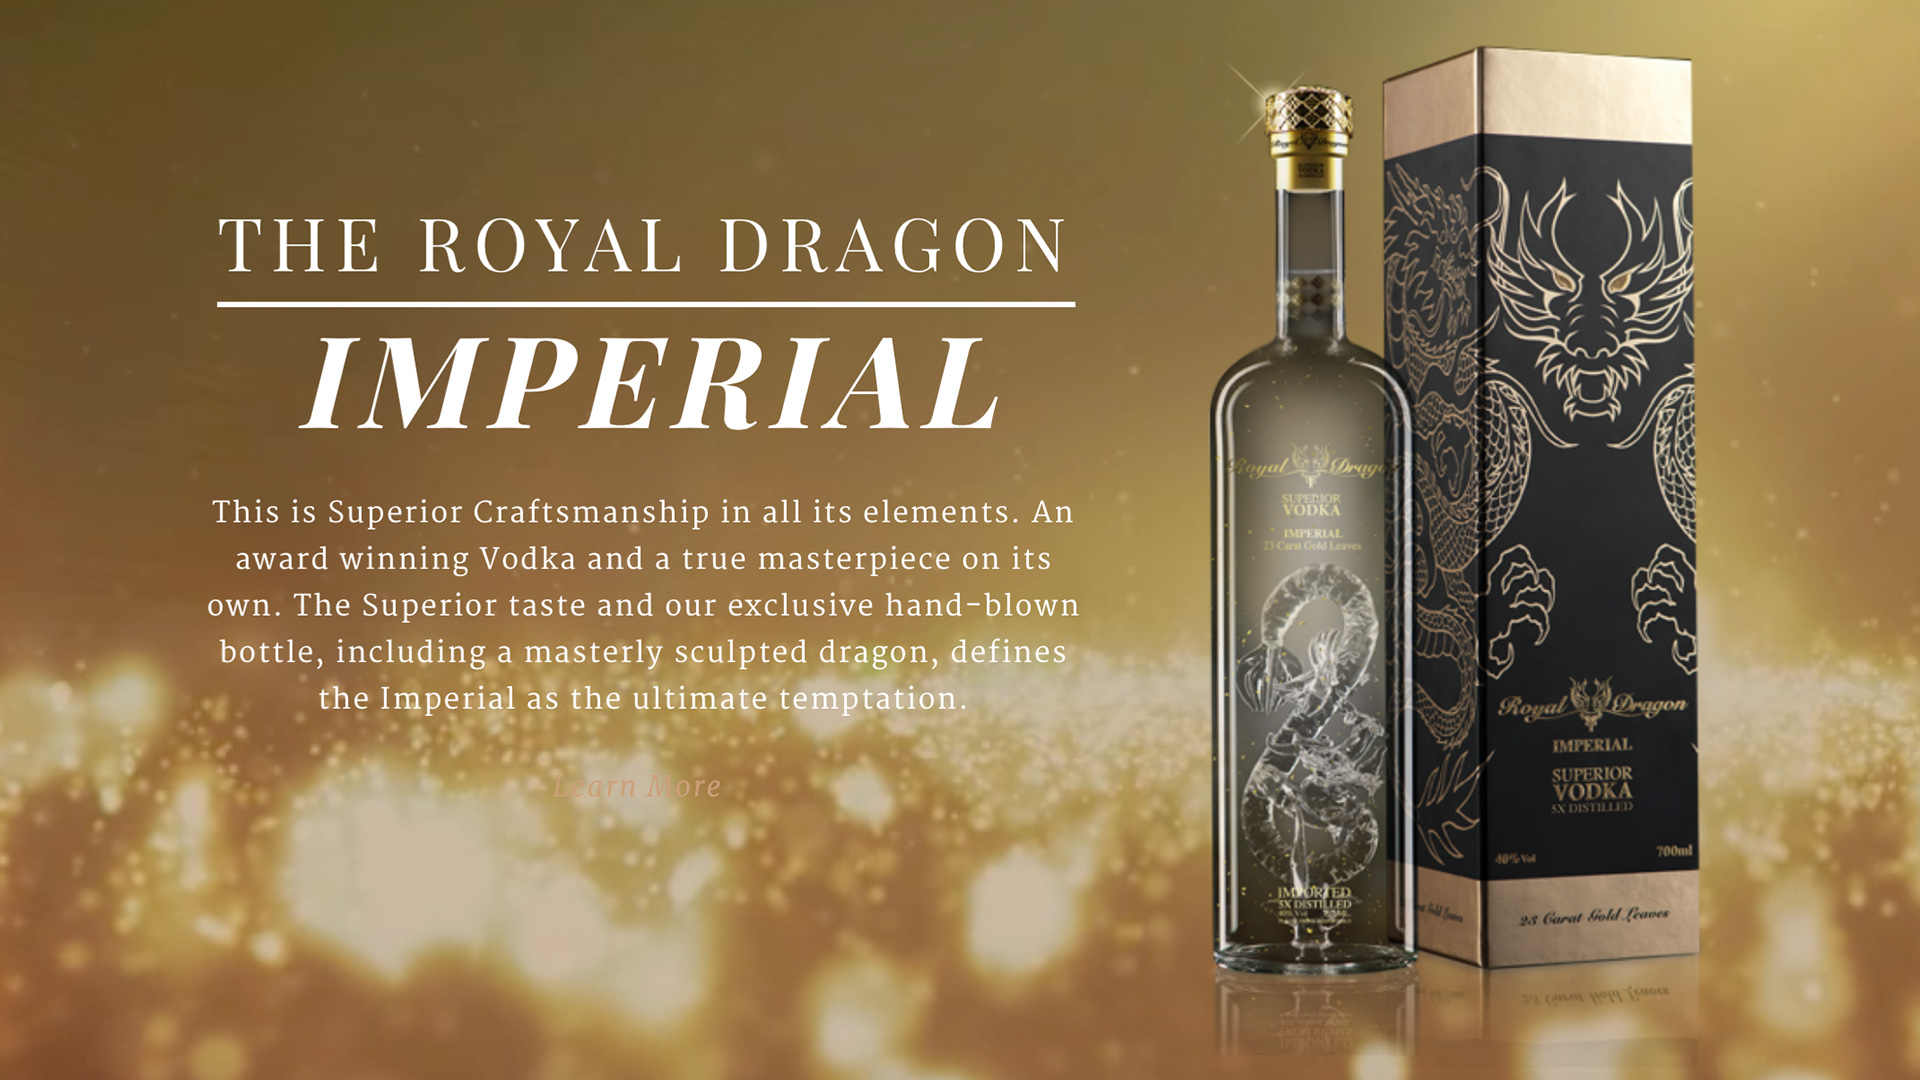 Royal Dragon Vodka UK Website